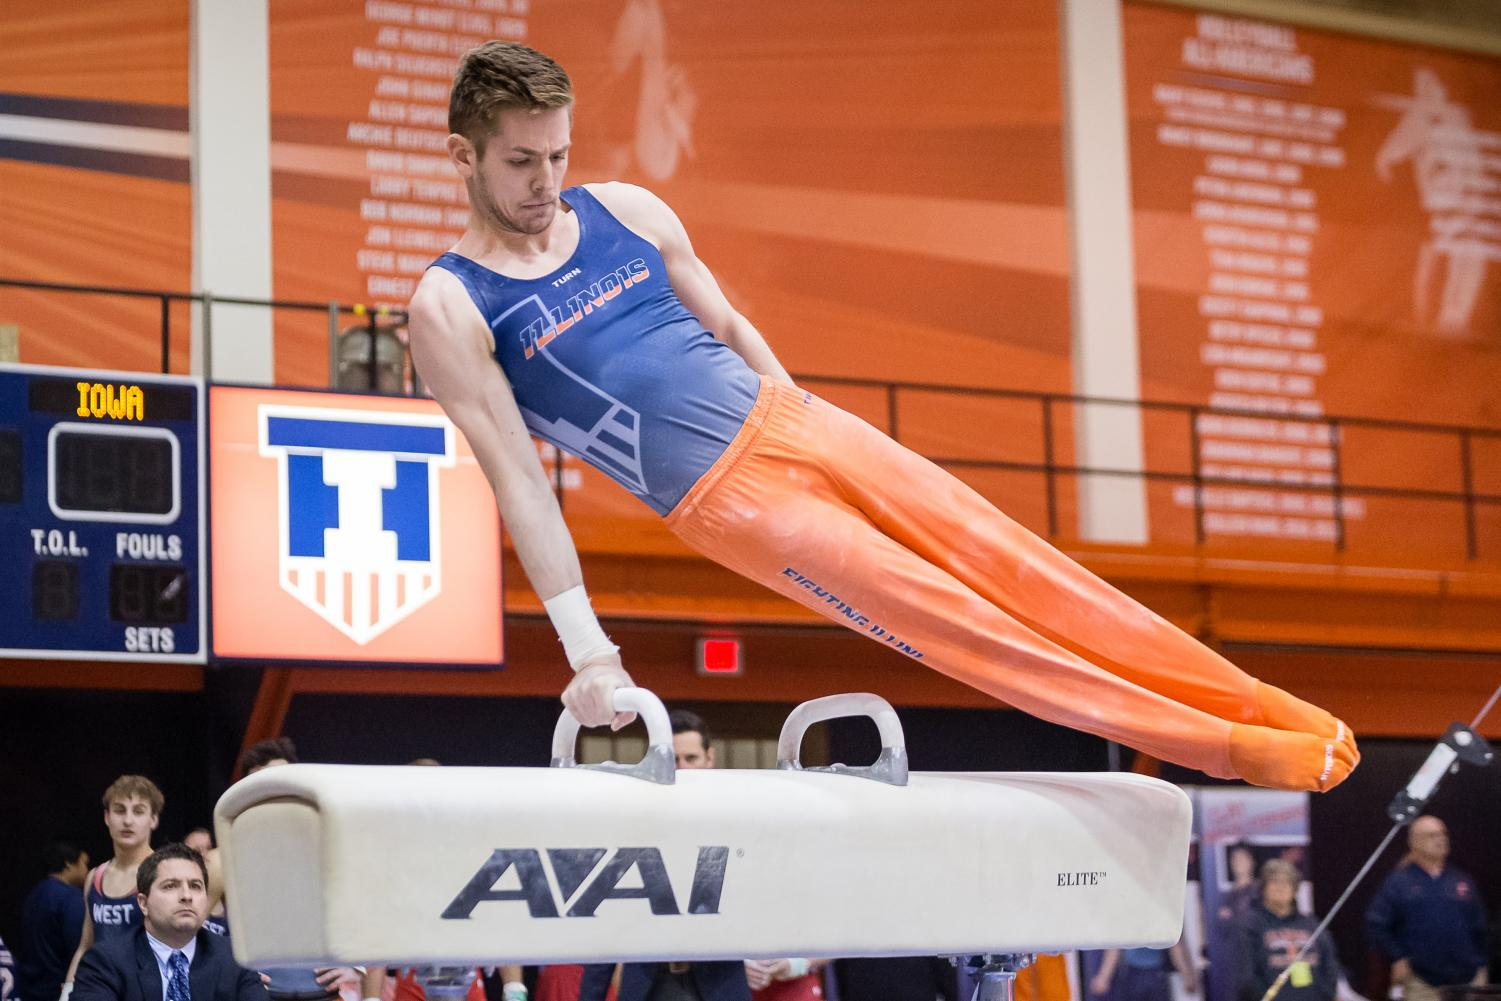 Illinois' Michael Paradise performs on the pommel horse during the meet against Iowa at Huff Hall on Jan. 26. The Illini won 410.450-398.800.